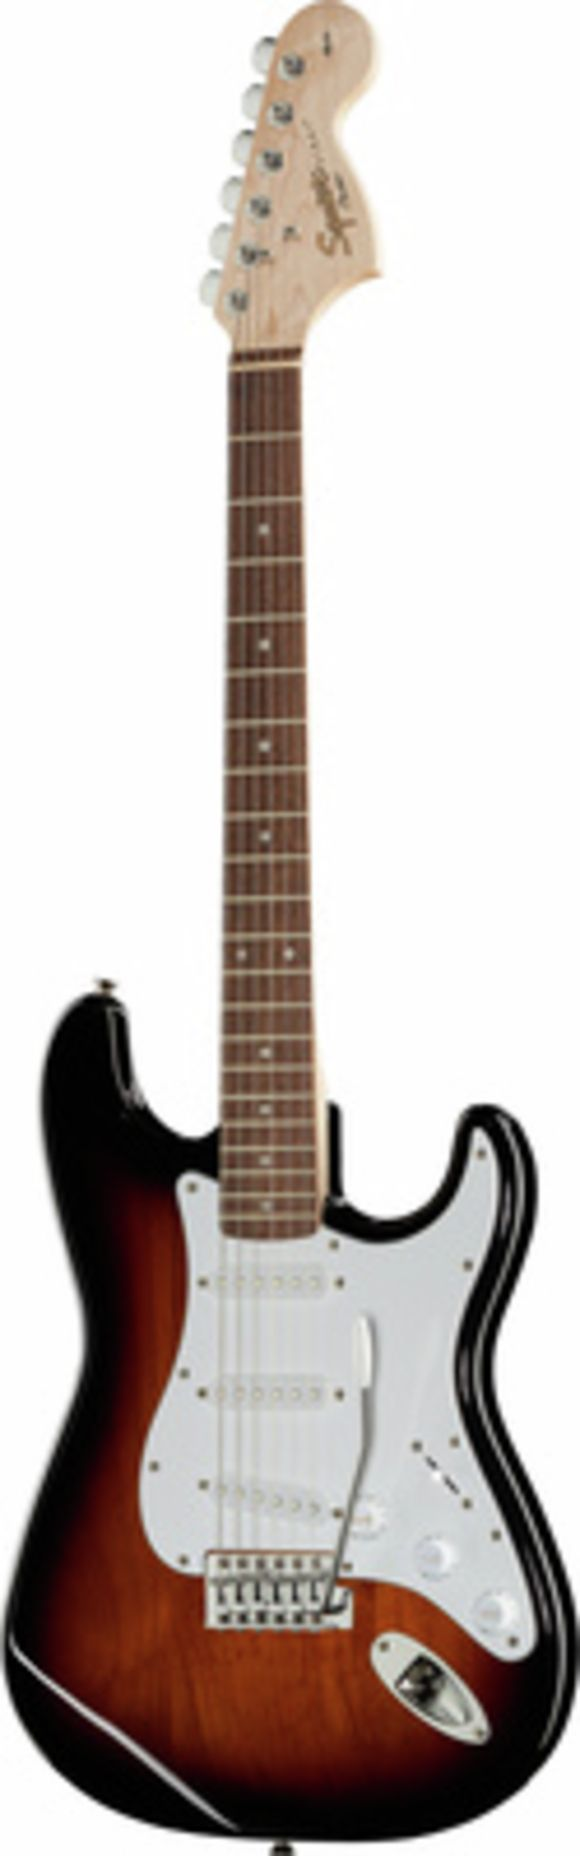 Squier Affinity IL BSB Fender